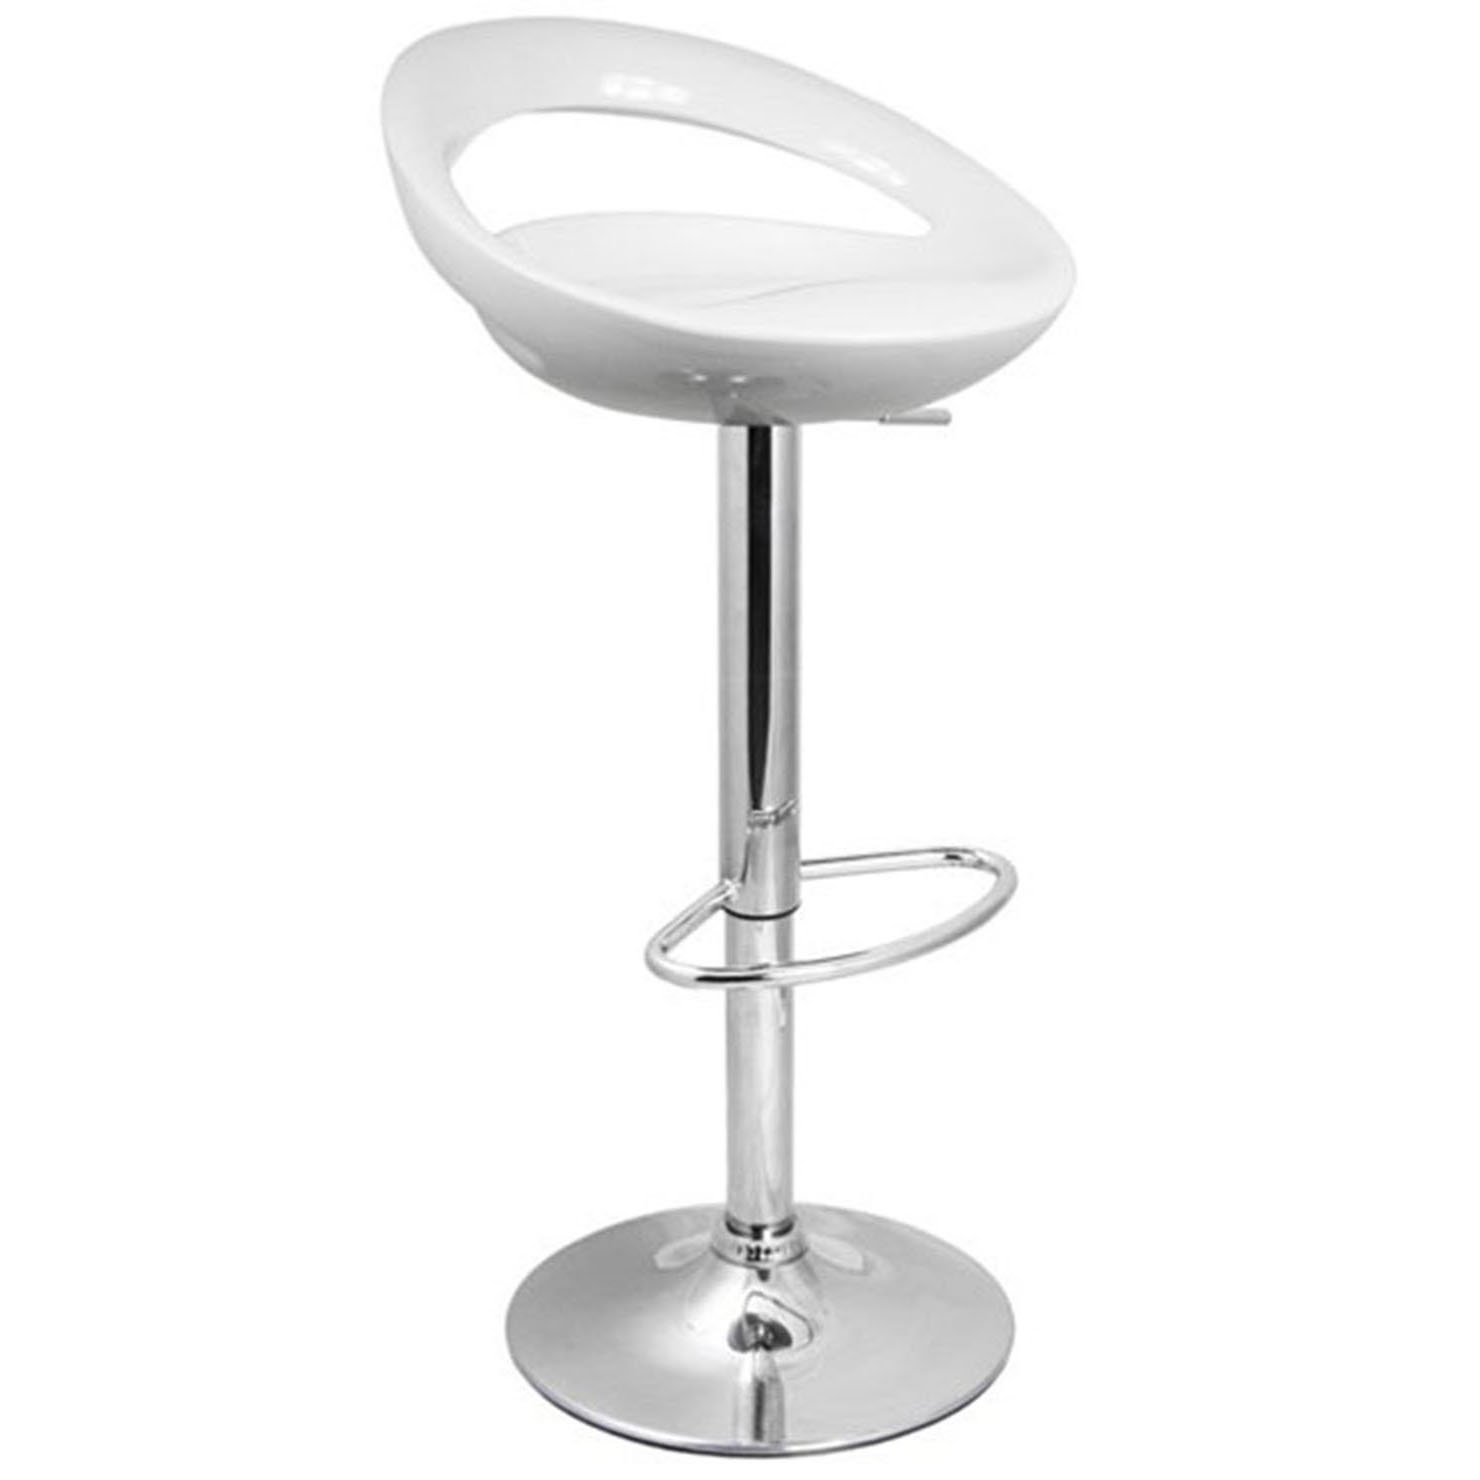 Sorrento Swivel Bar Stool - White Product Image